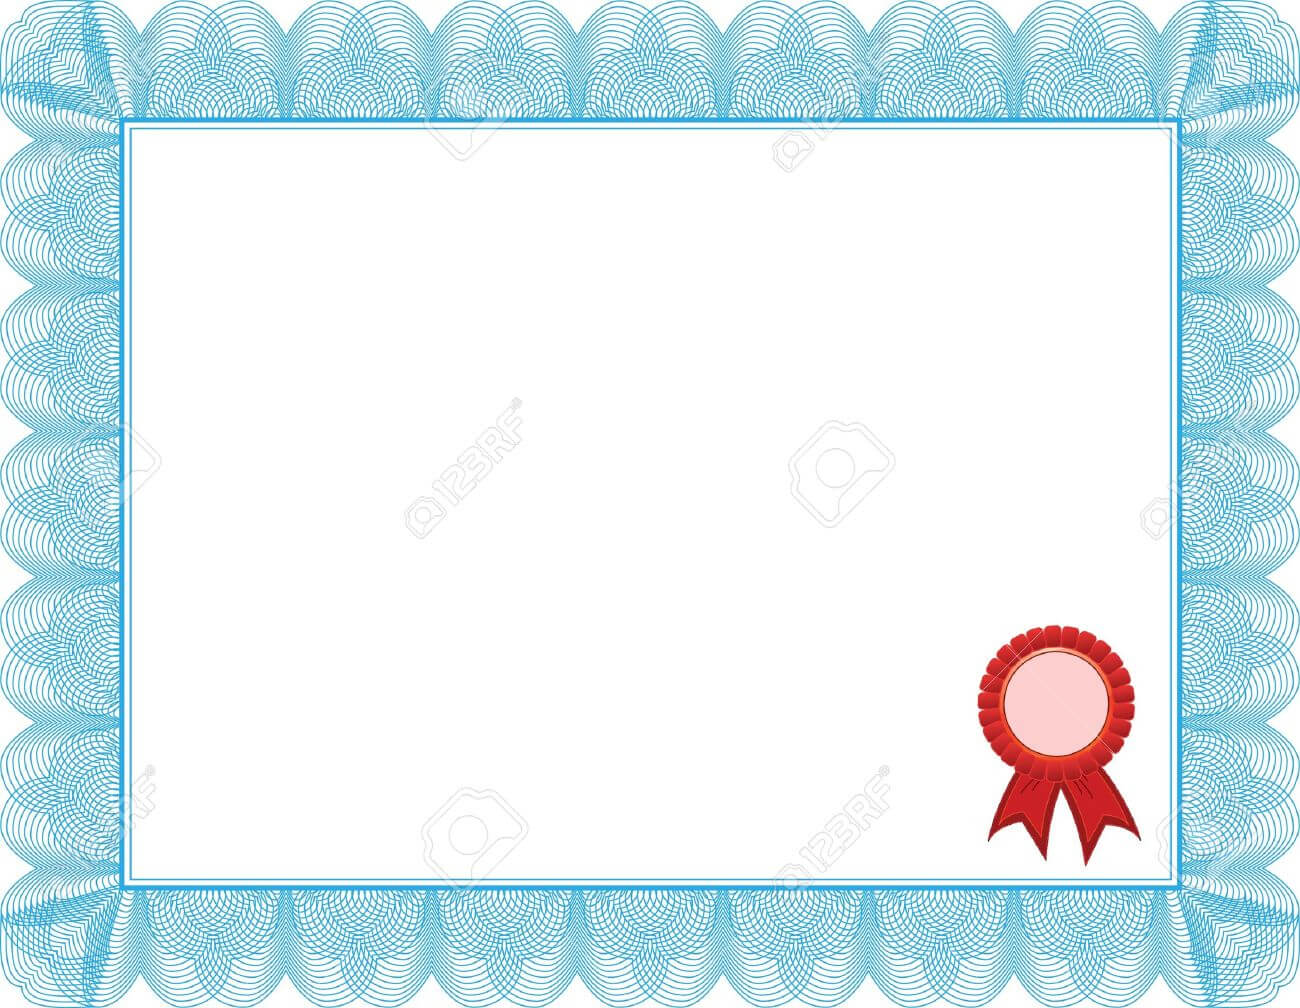 Diploma, Certificate Template Intended For Award Certificate Border Template